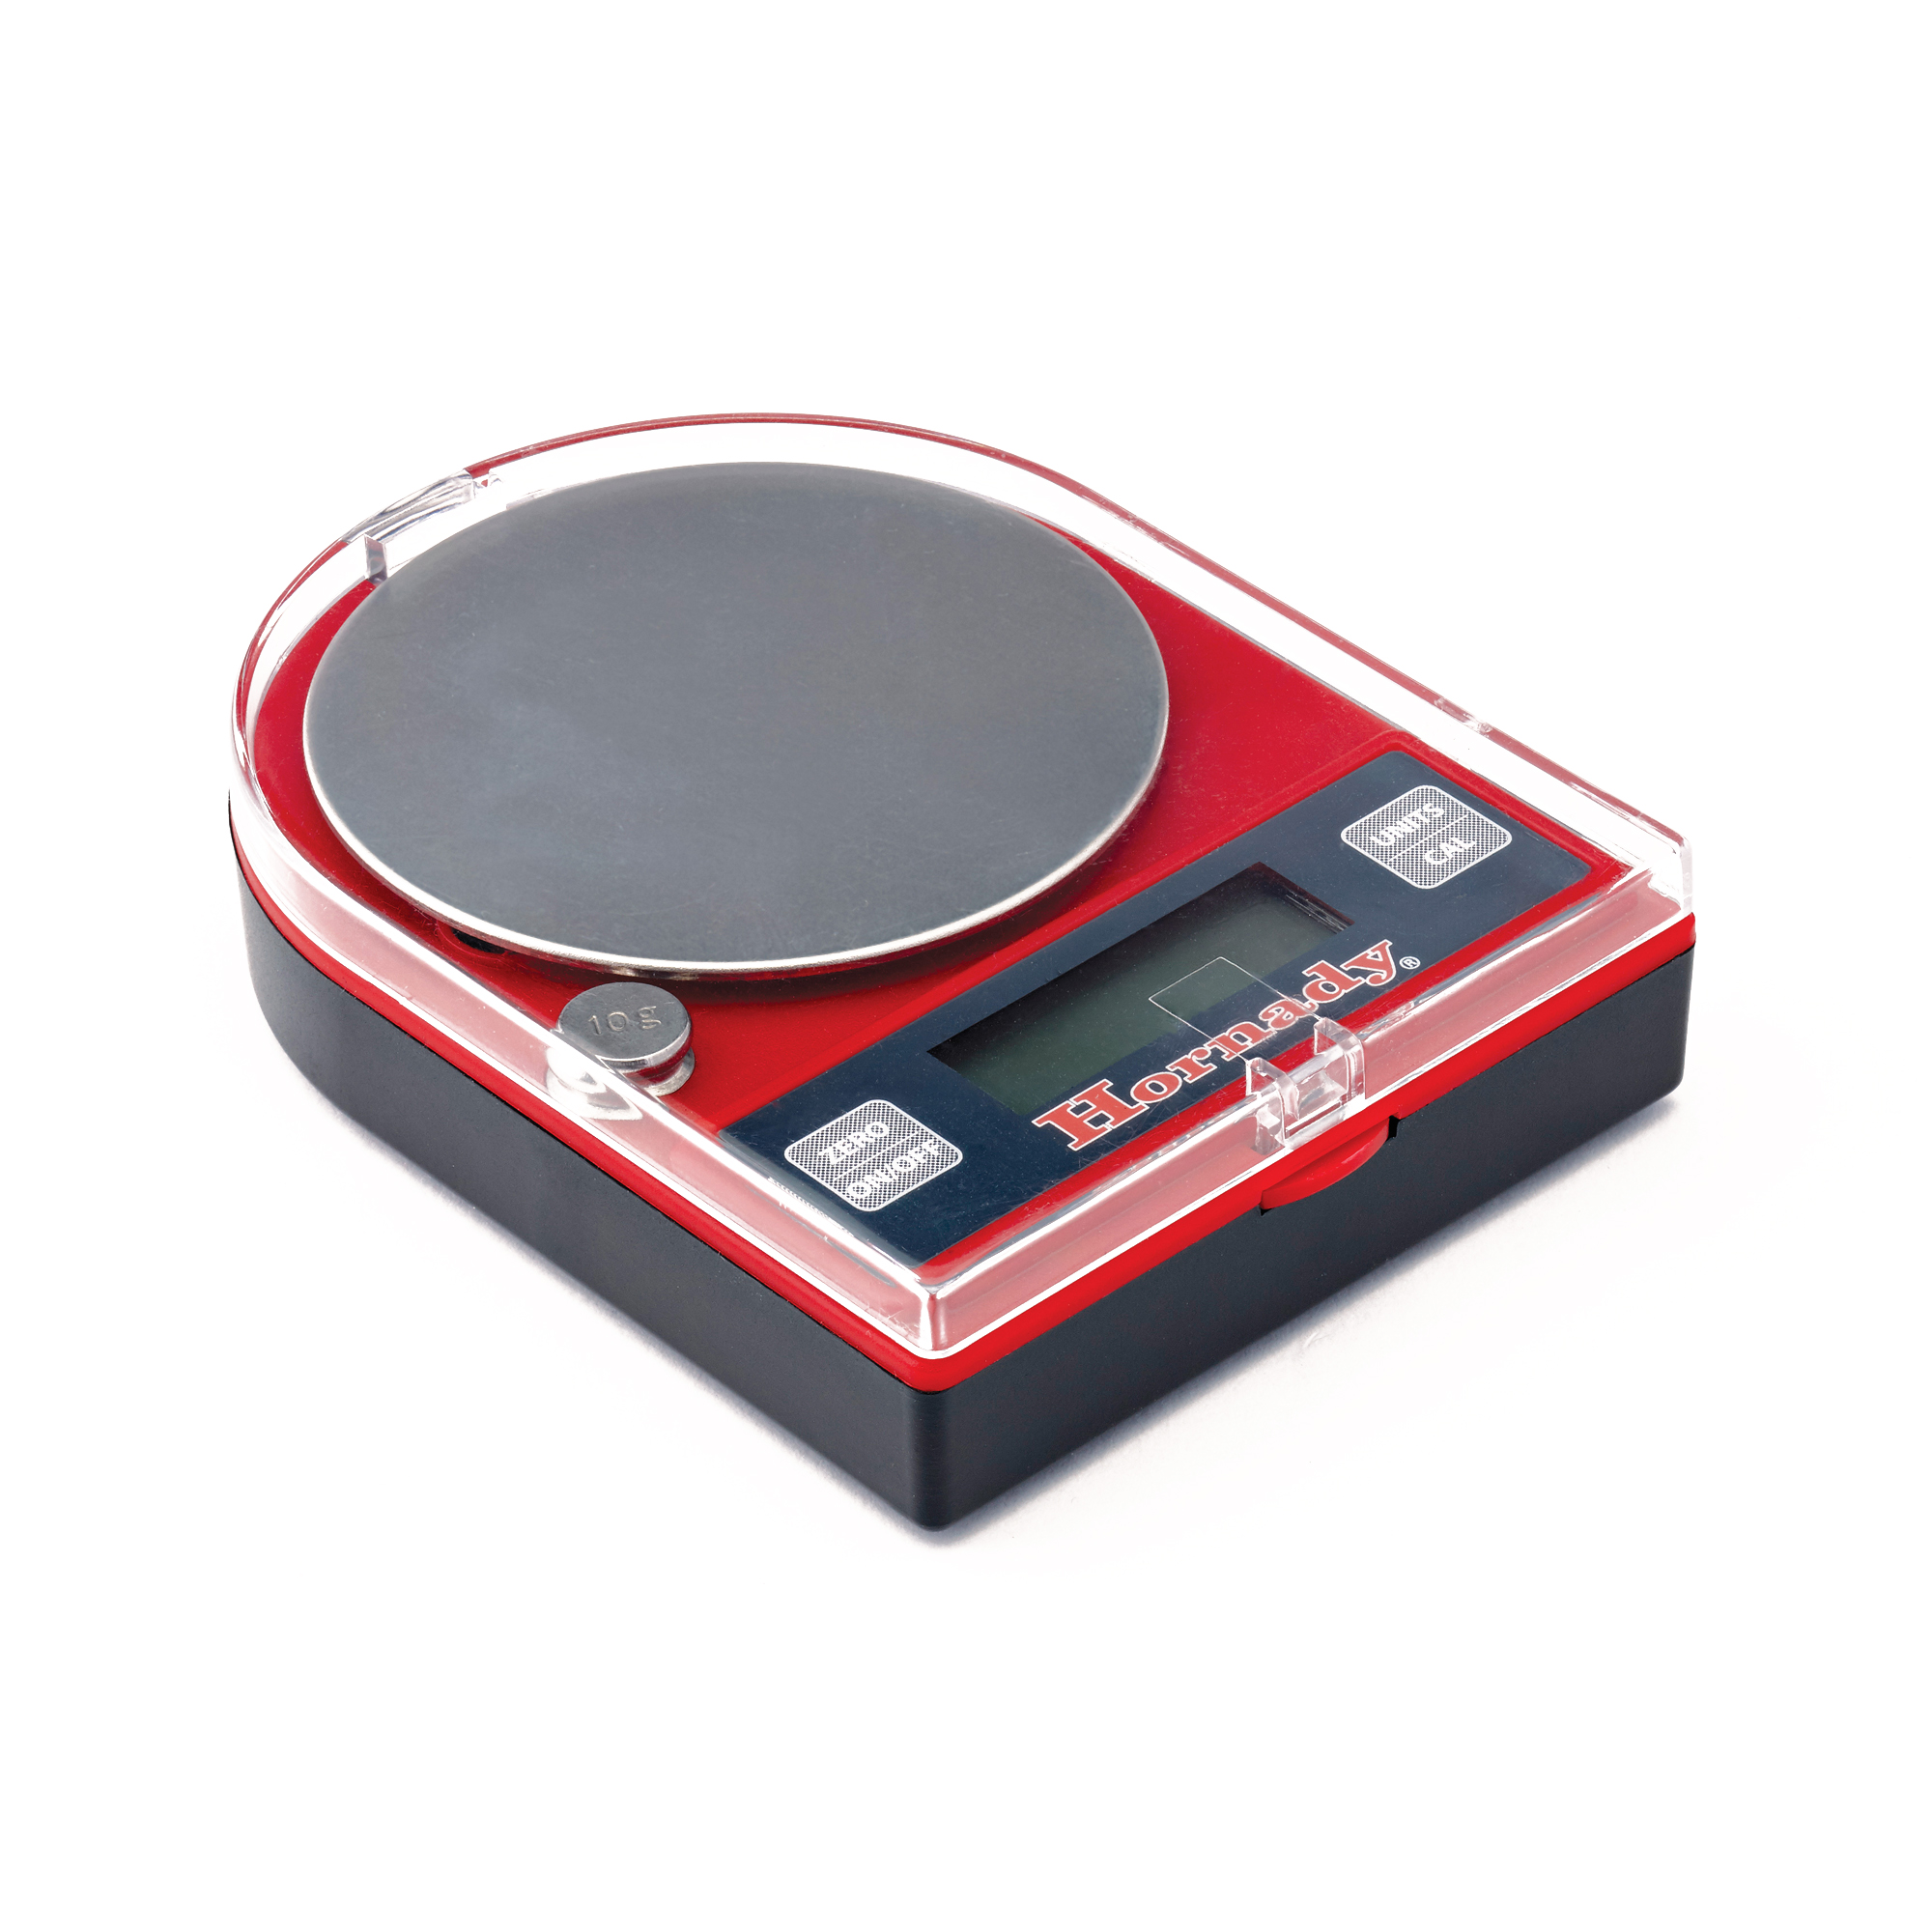 Hrndy G2-1500 Electronic Scale